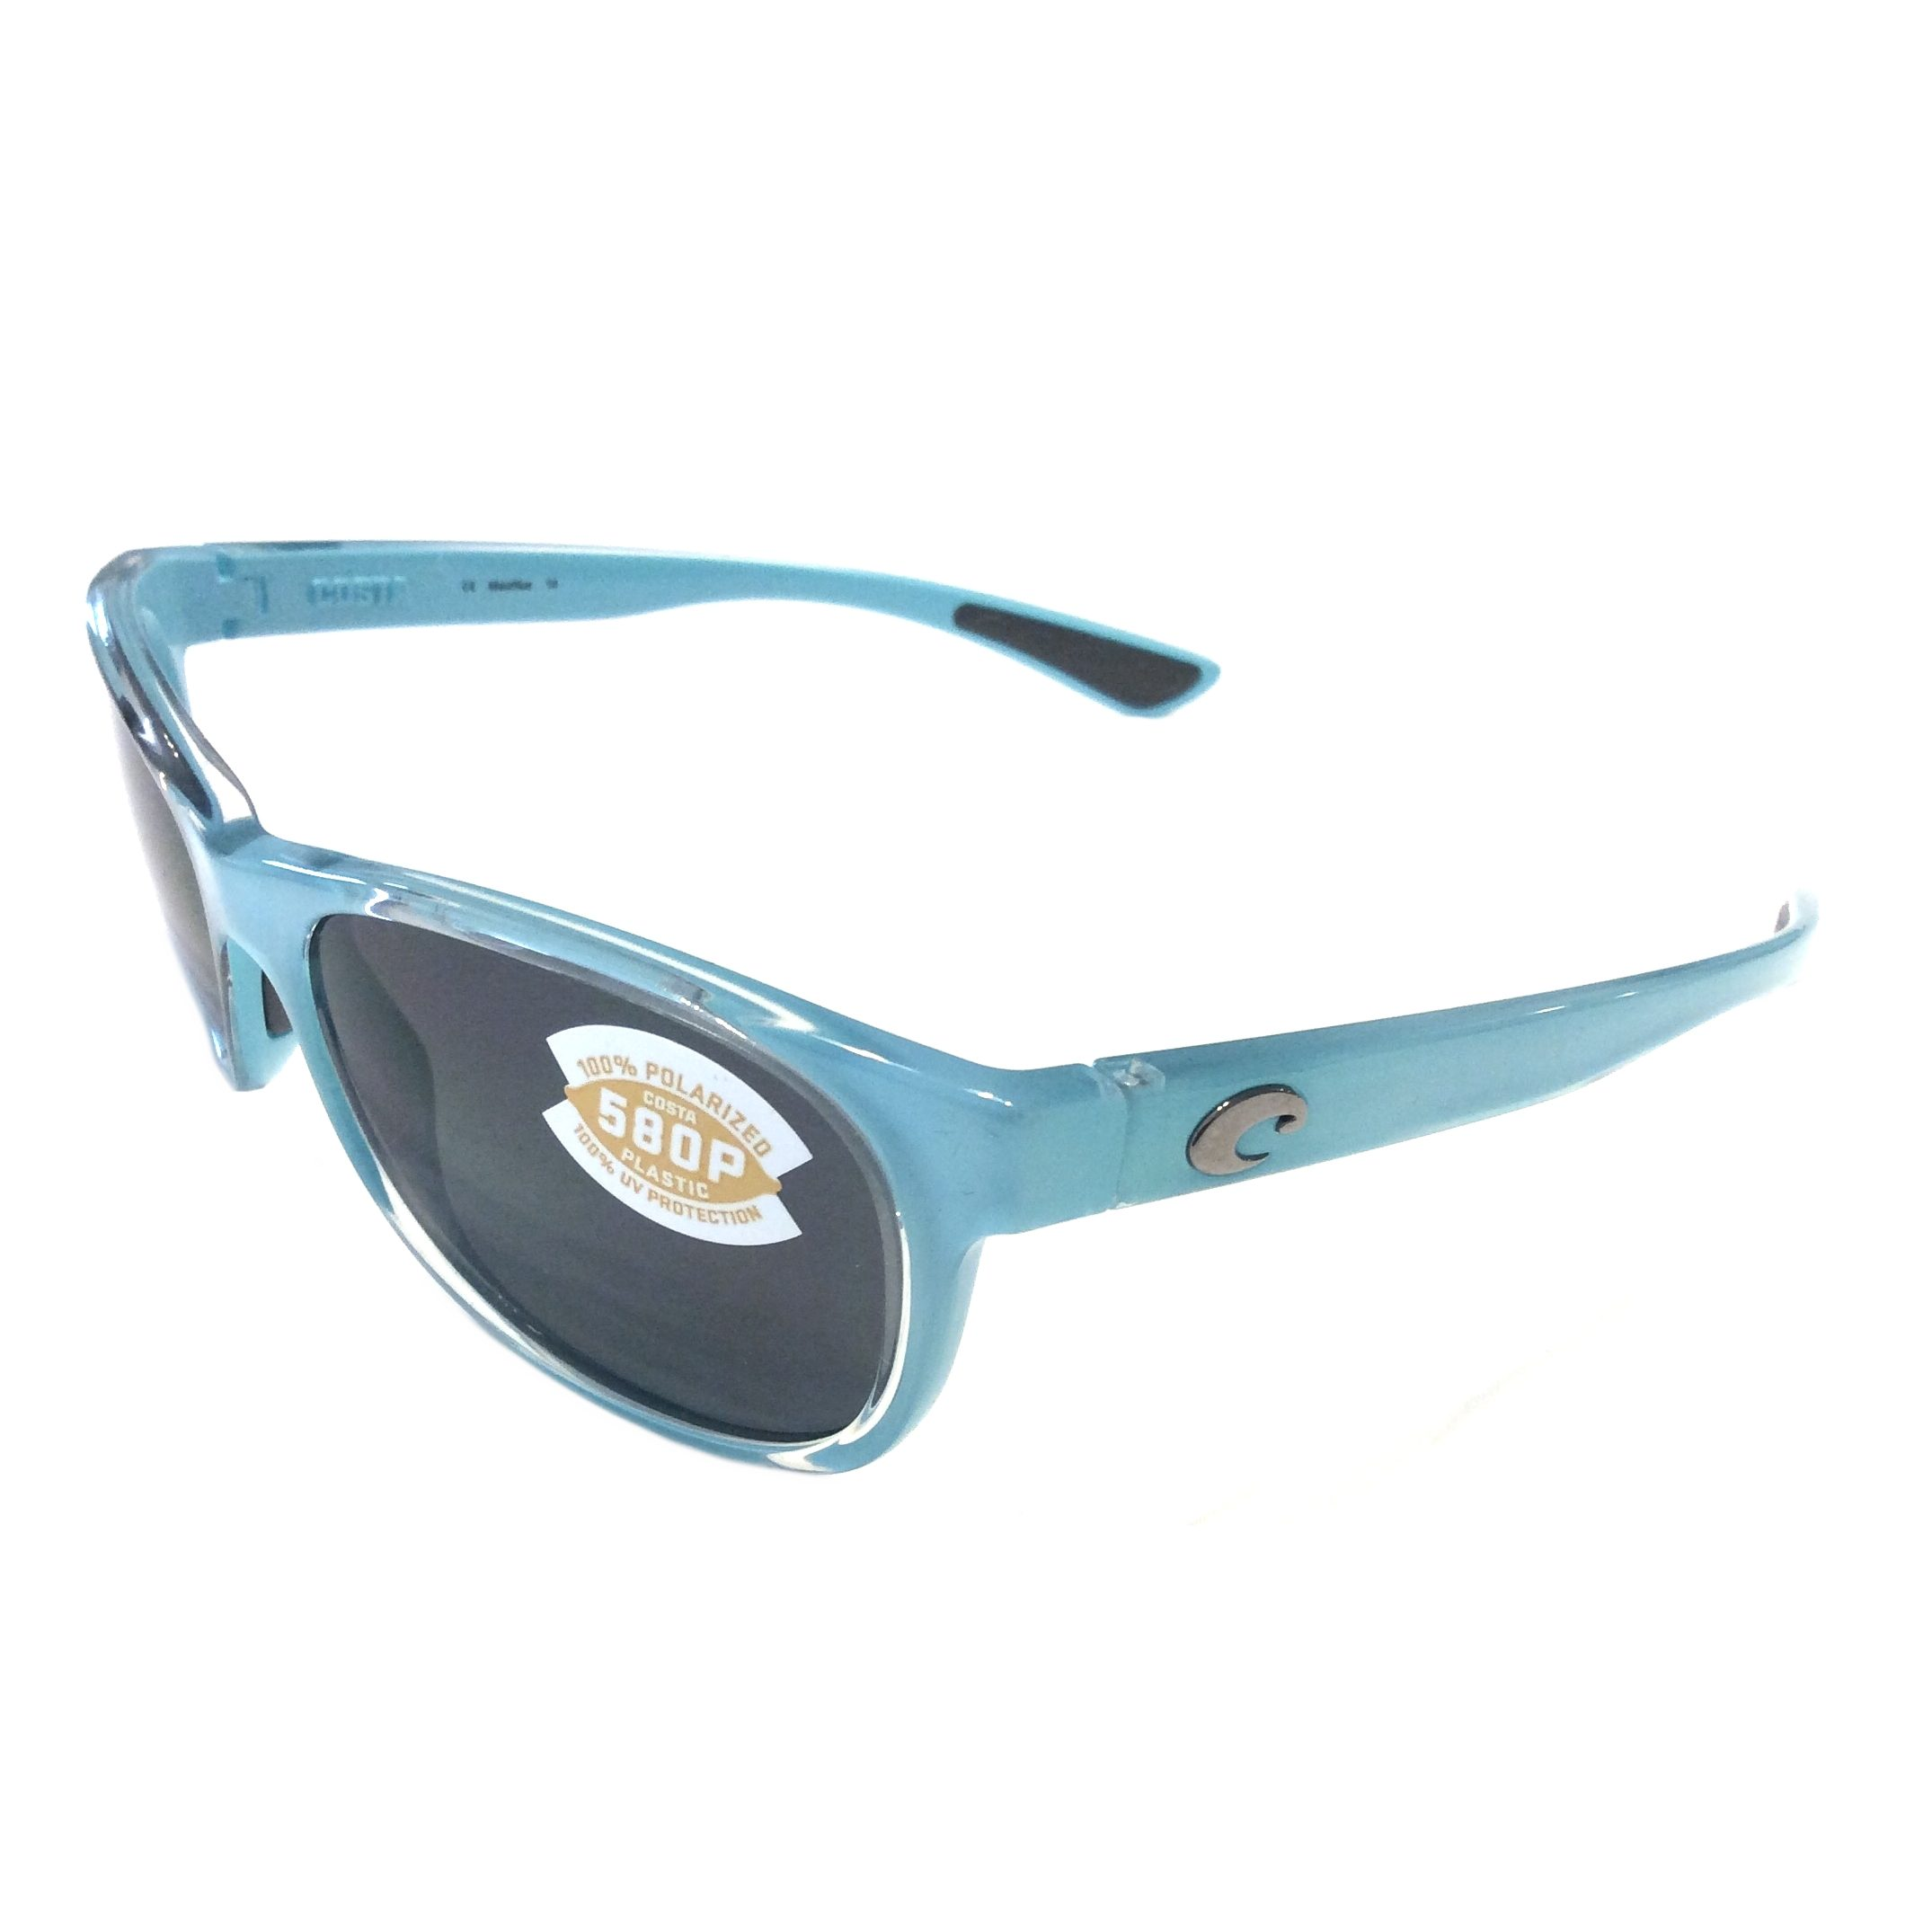 Costa Del Mar Prop Sunglasses - Ocean Blue - Gray 580P Polarized